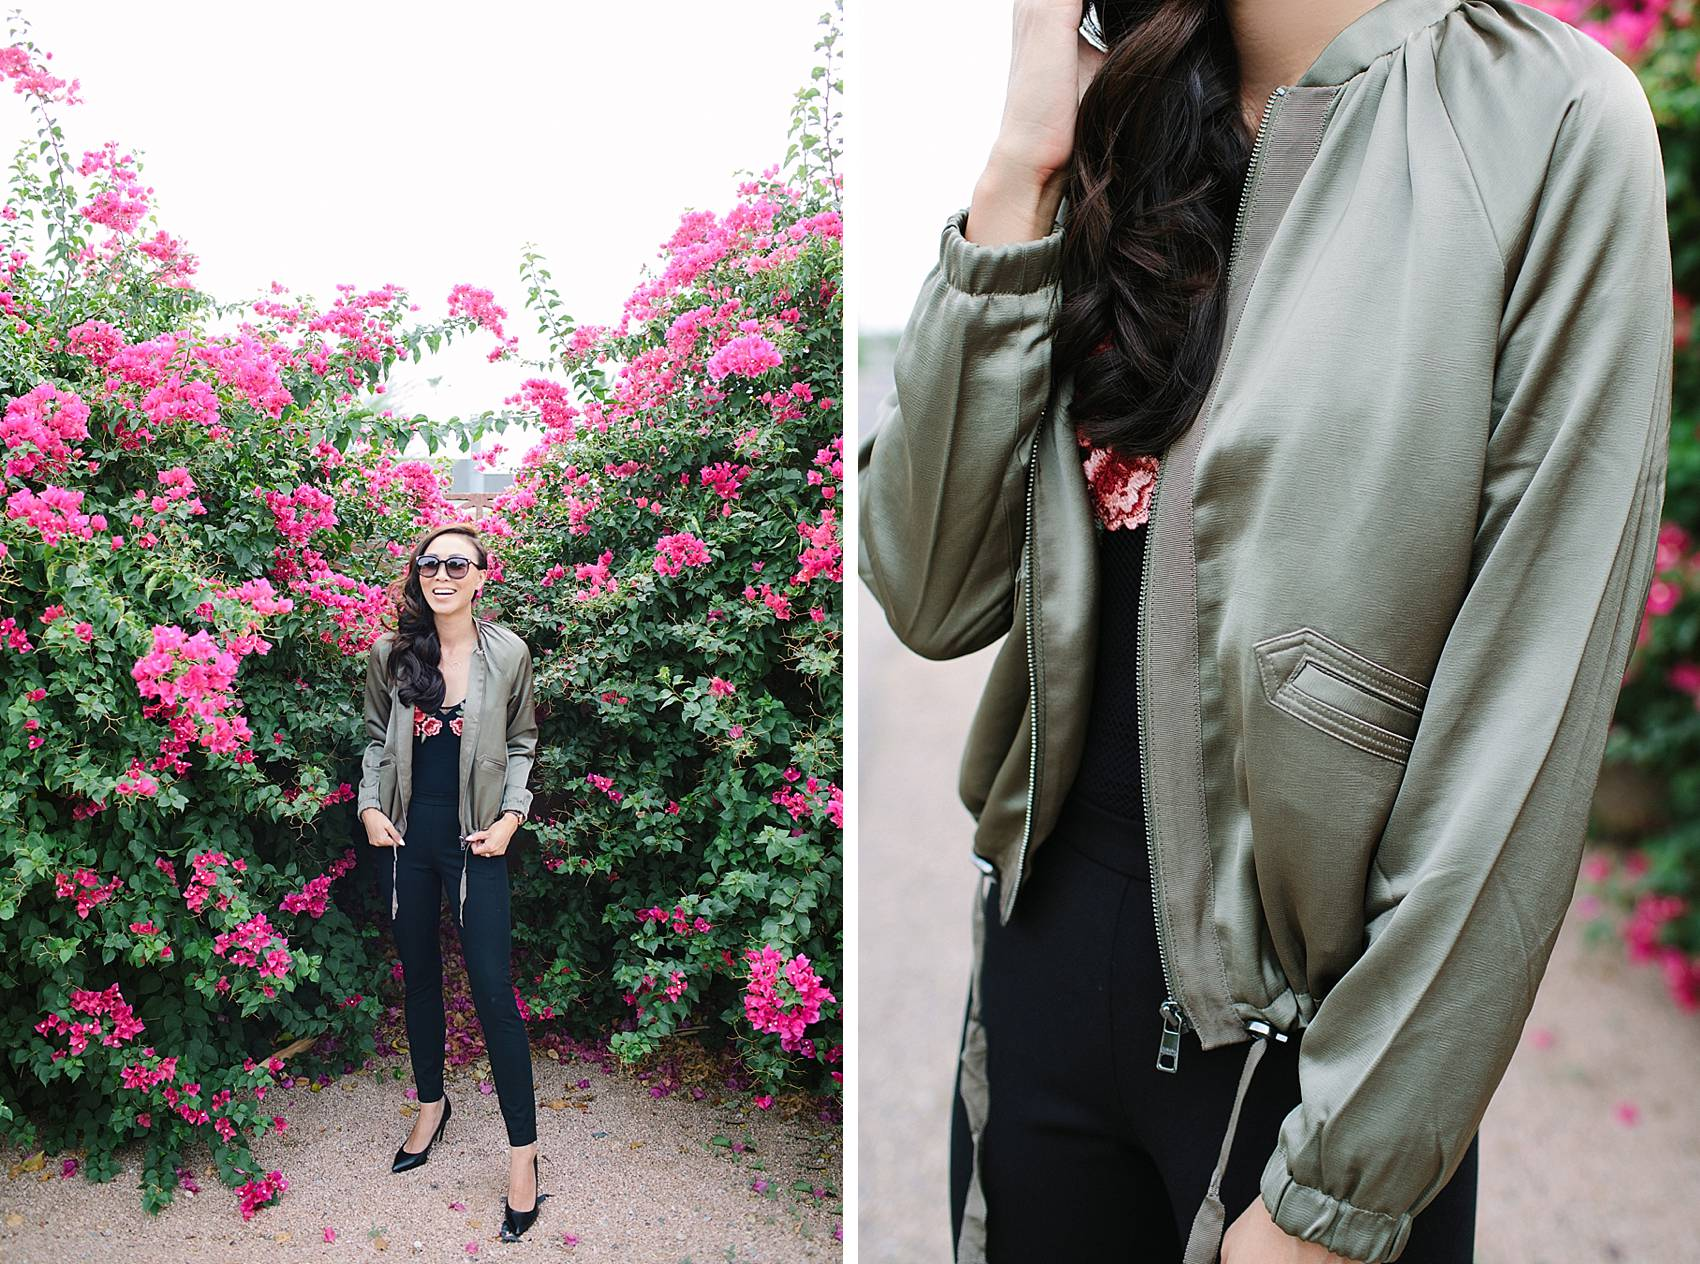 diana elizabeth lifestyle blogger in black devon-fit bi-stretch leggings and satin bomber jacket by banana republic standing in front of pink bougevvilla plants